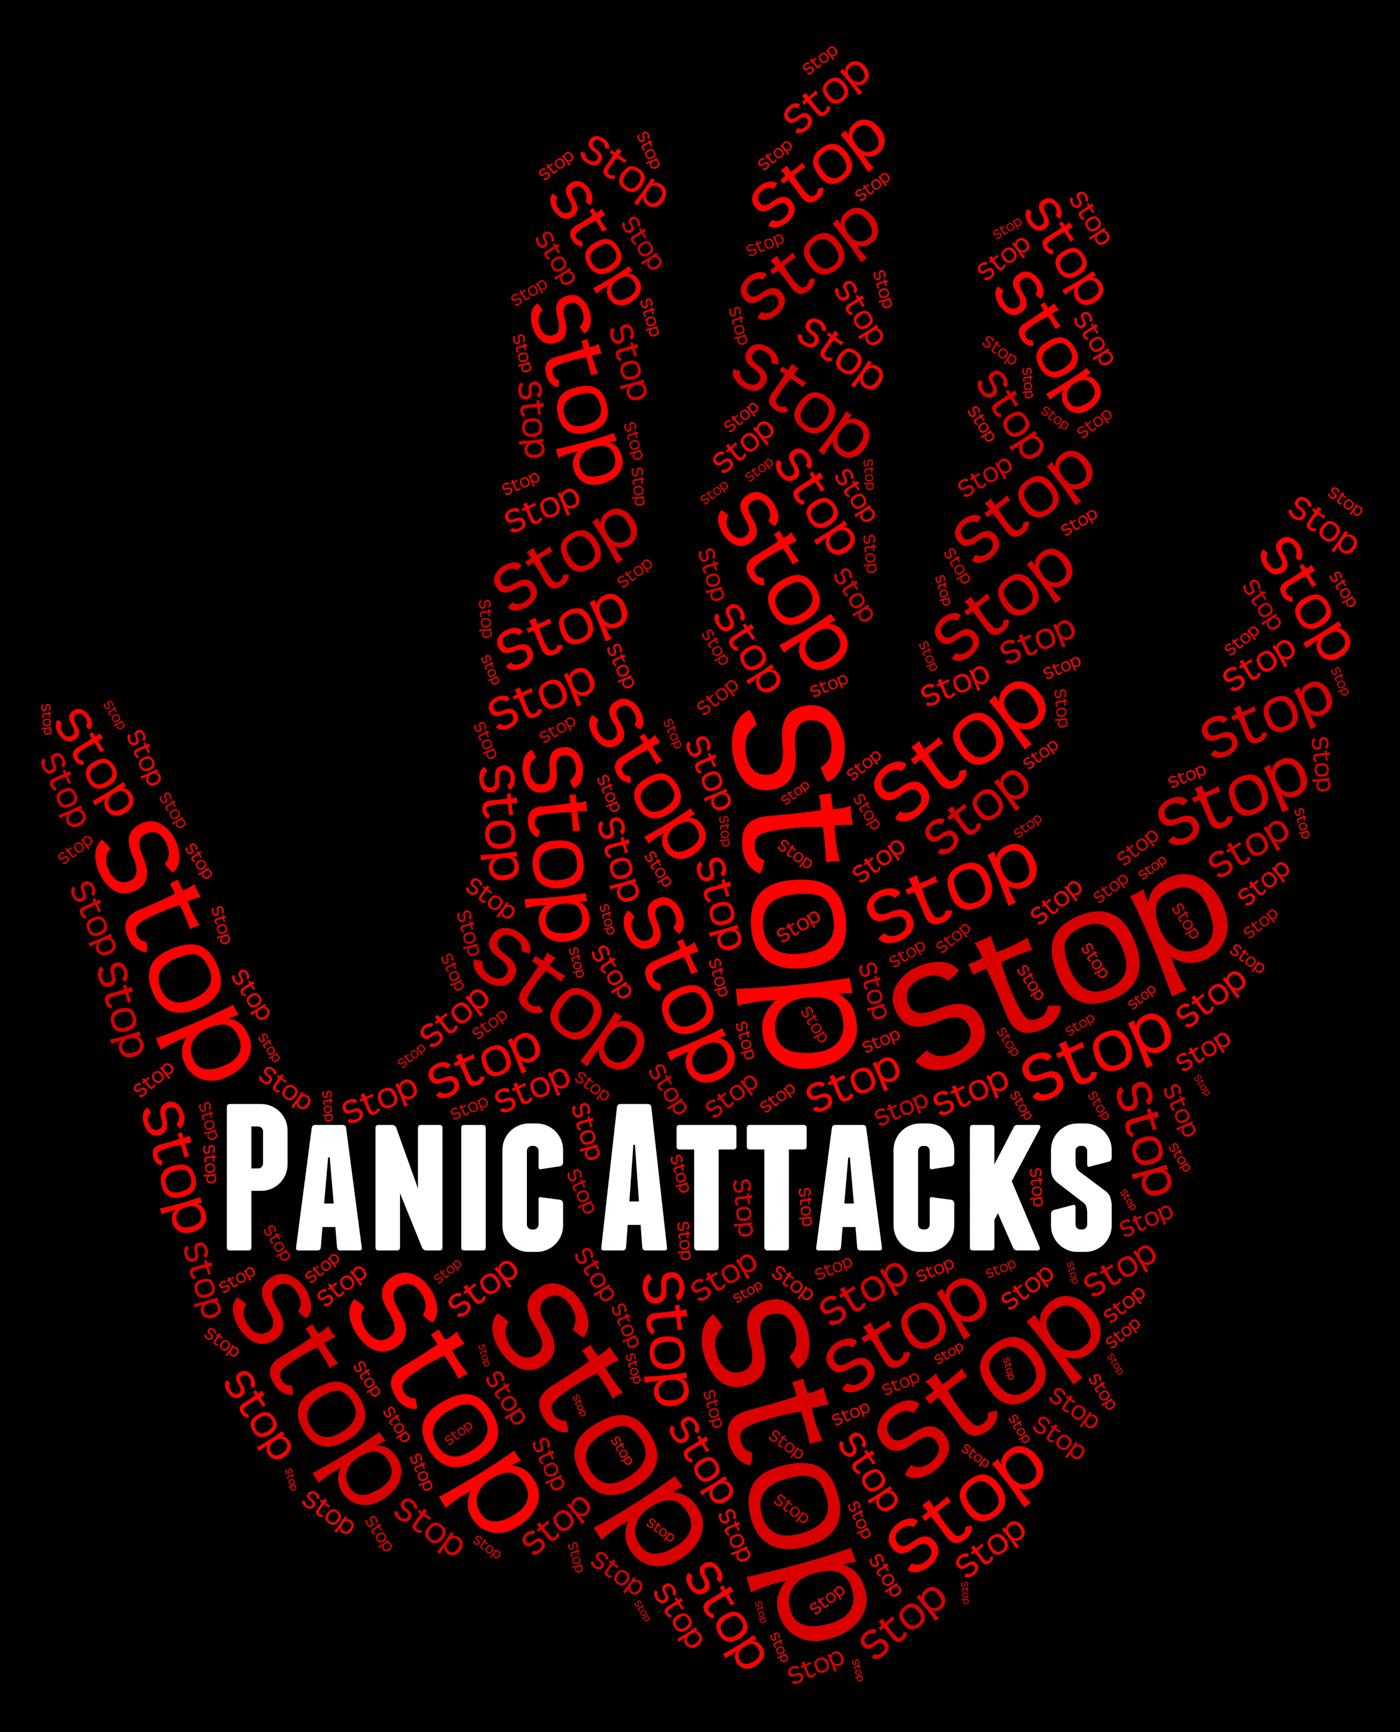 Stop panic shows warning sign and attack photo